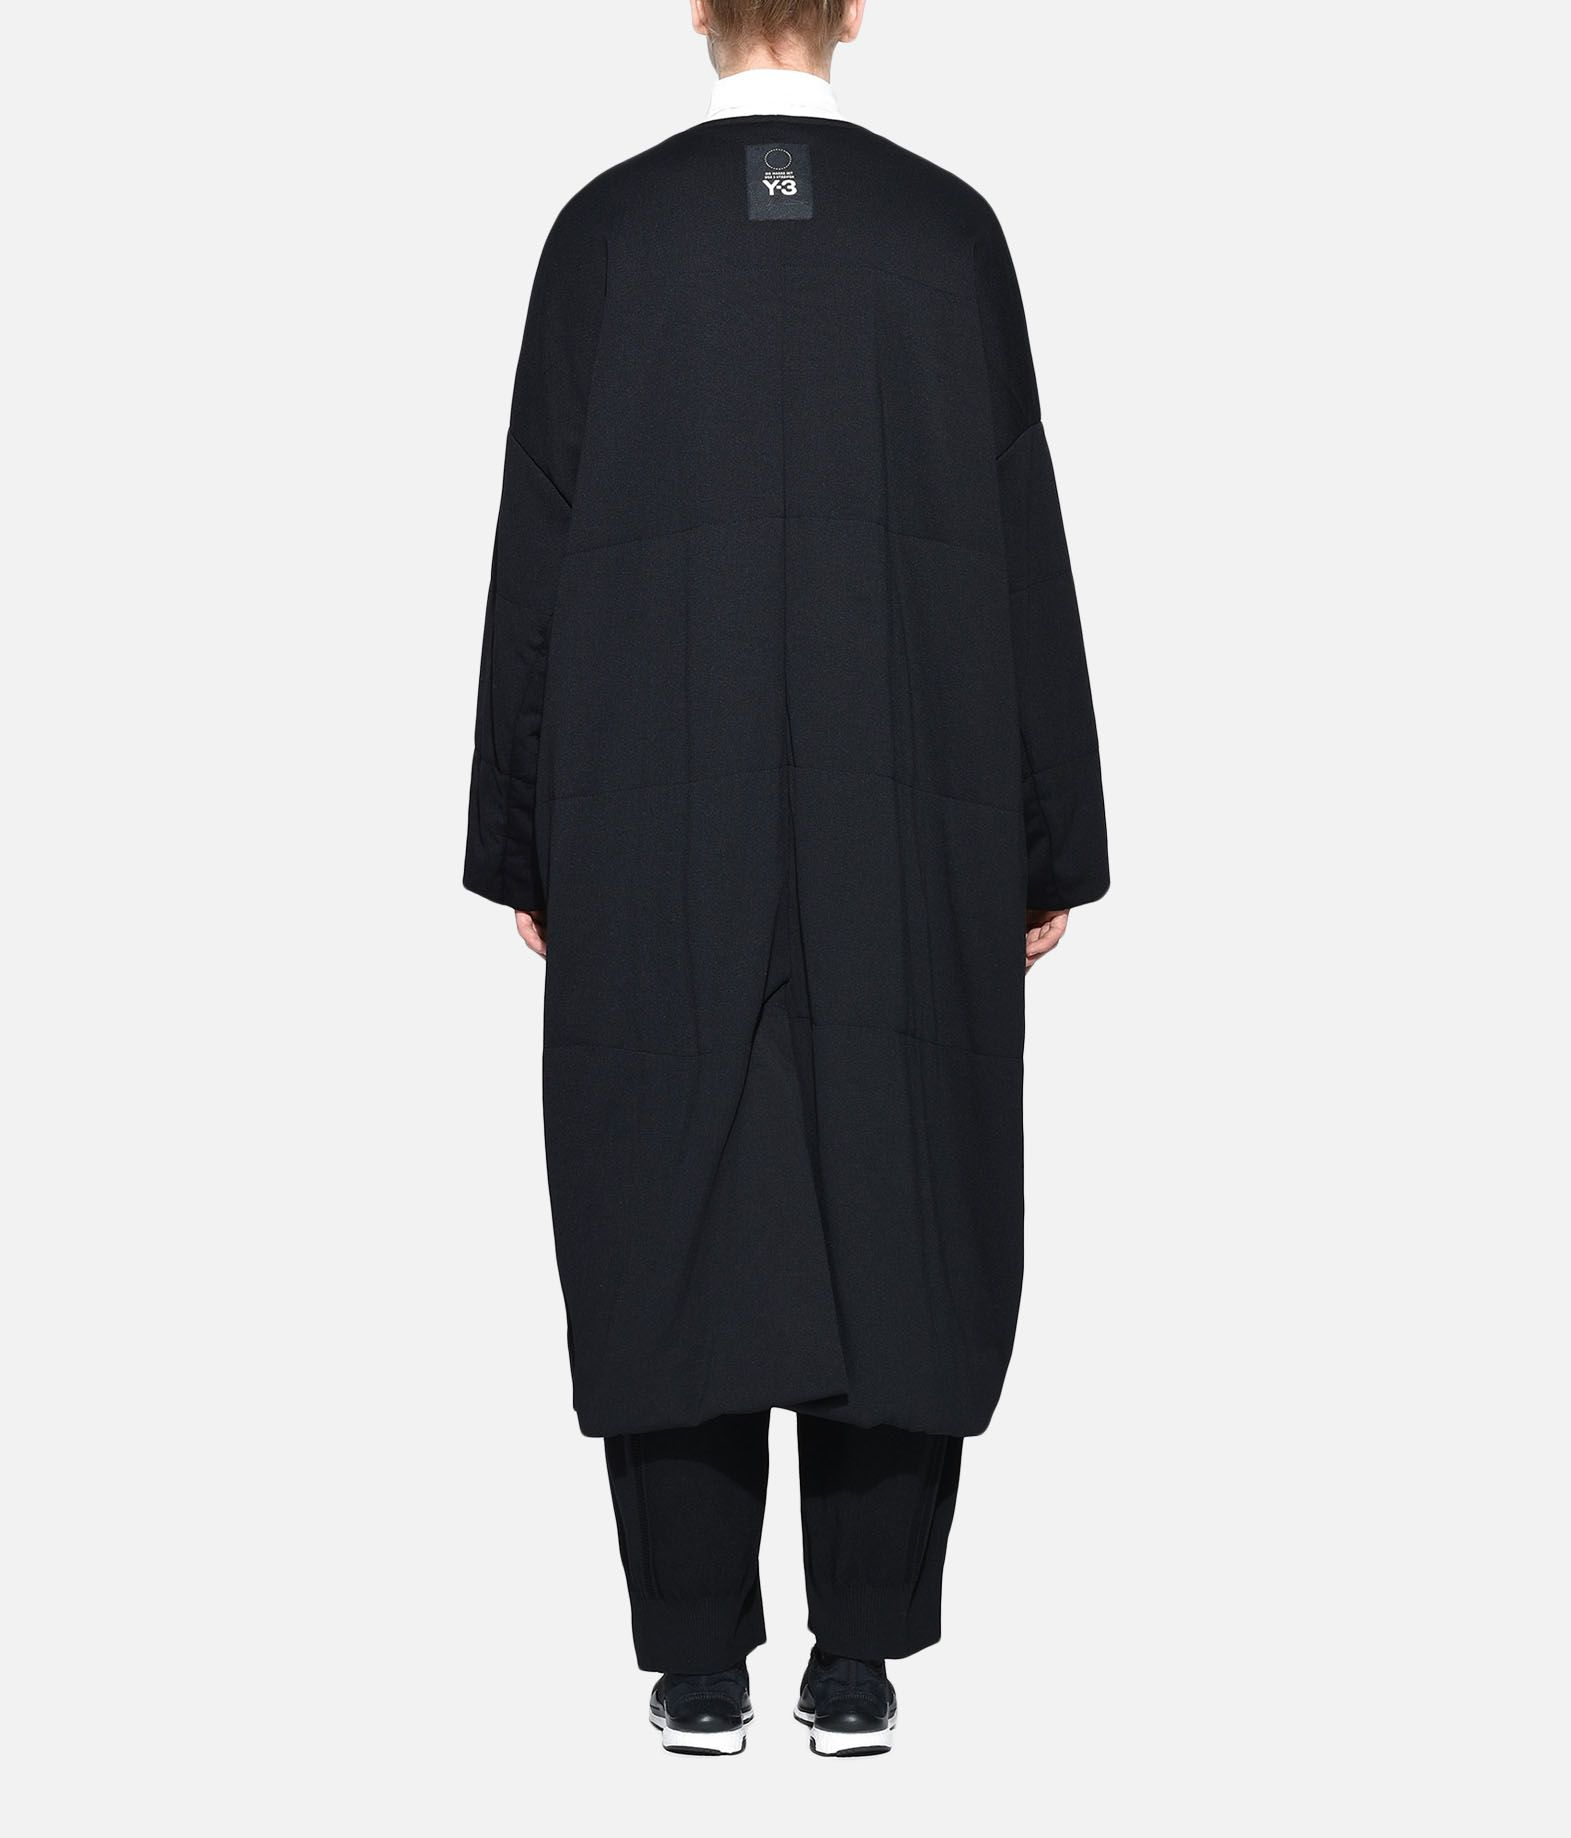 Y-3 Y-3 Oversize Padded Coat Mantel Damen d